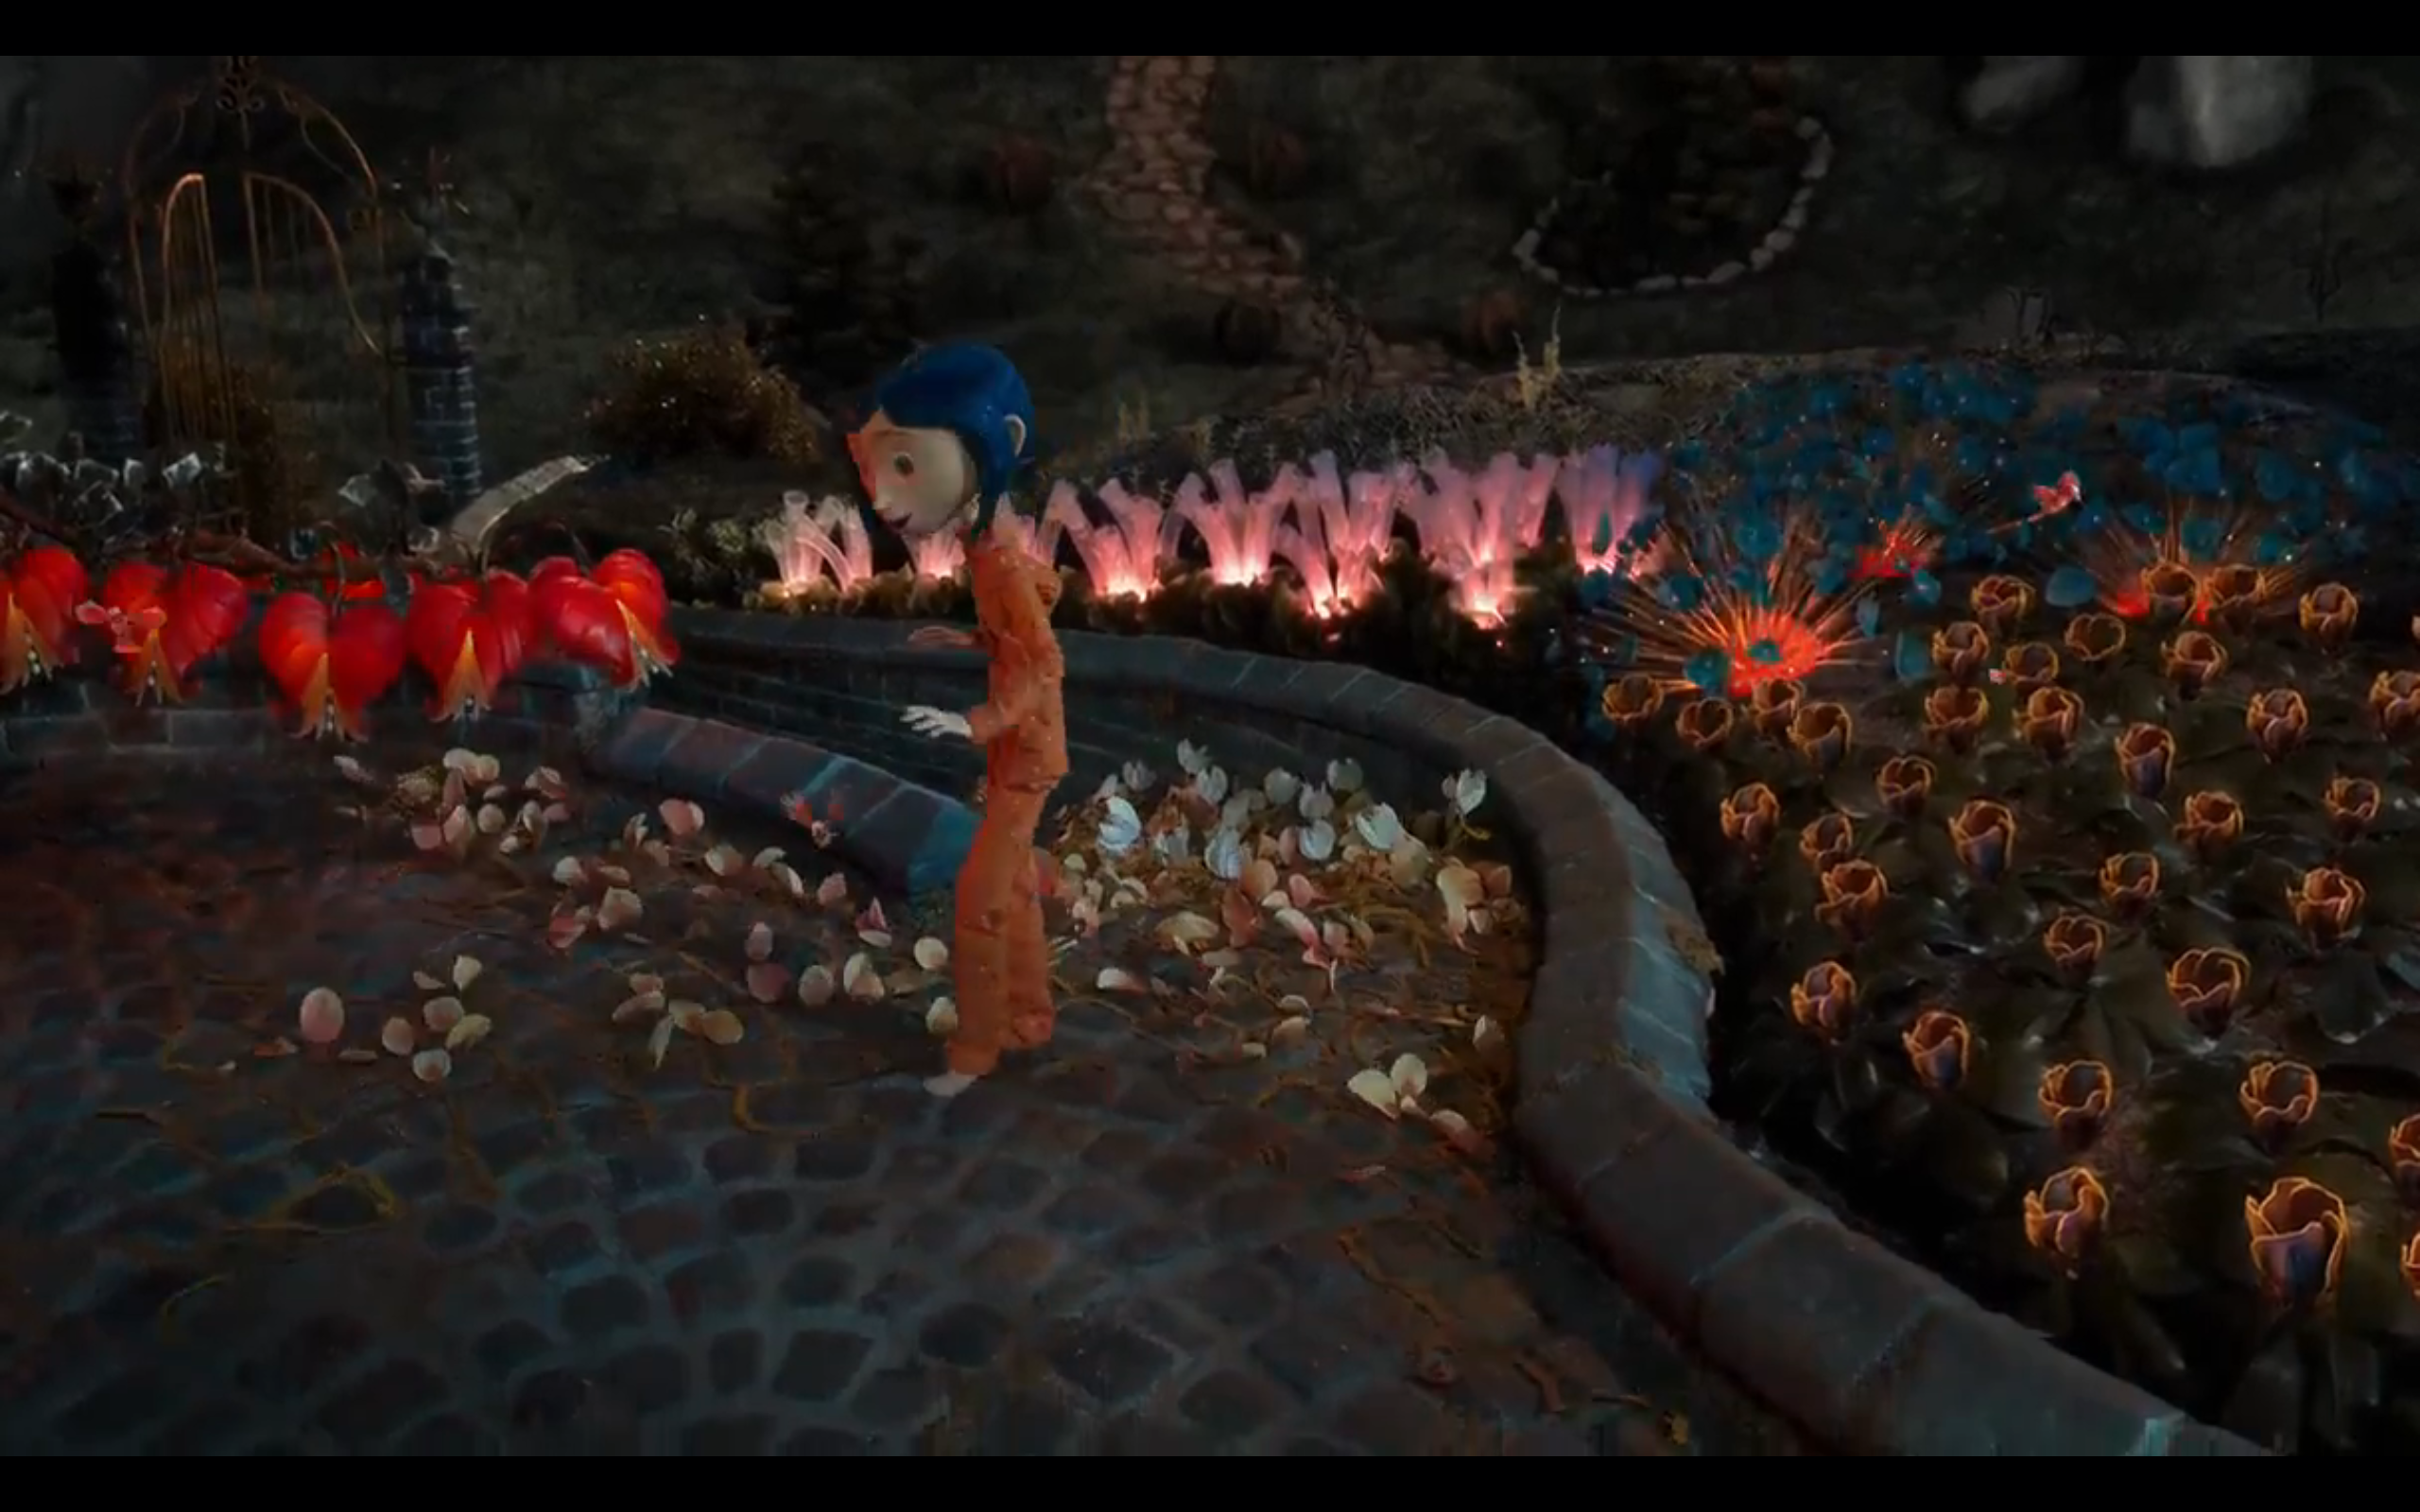 Psychedelic Fun With Garden >> 31 Days of Hallowe'en, Day 29: Coraline (2009) | An Englishwoman in Salem